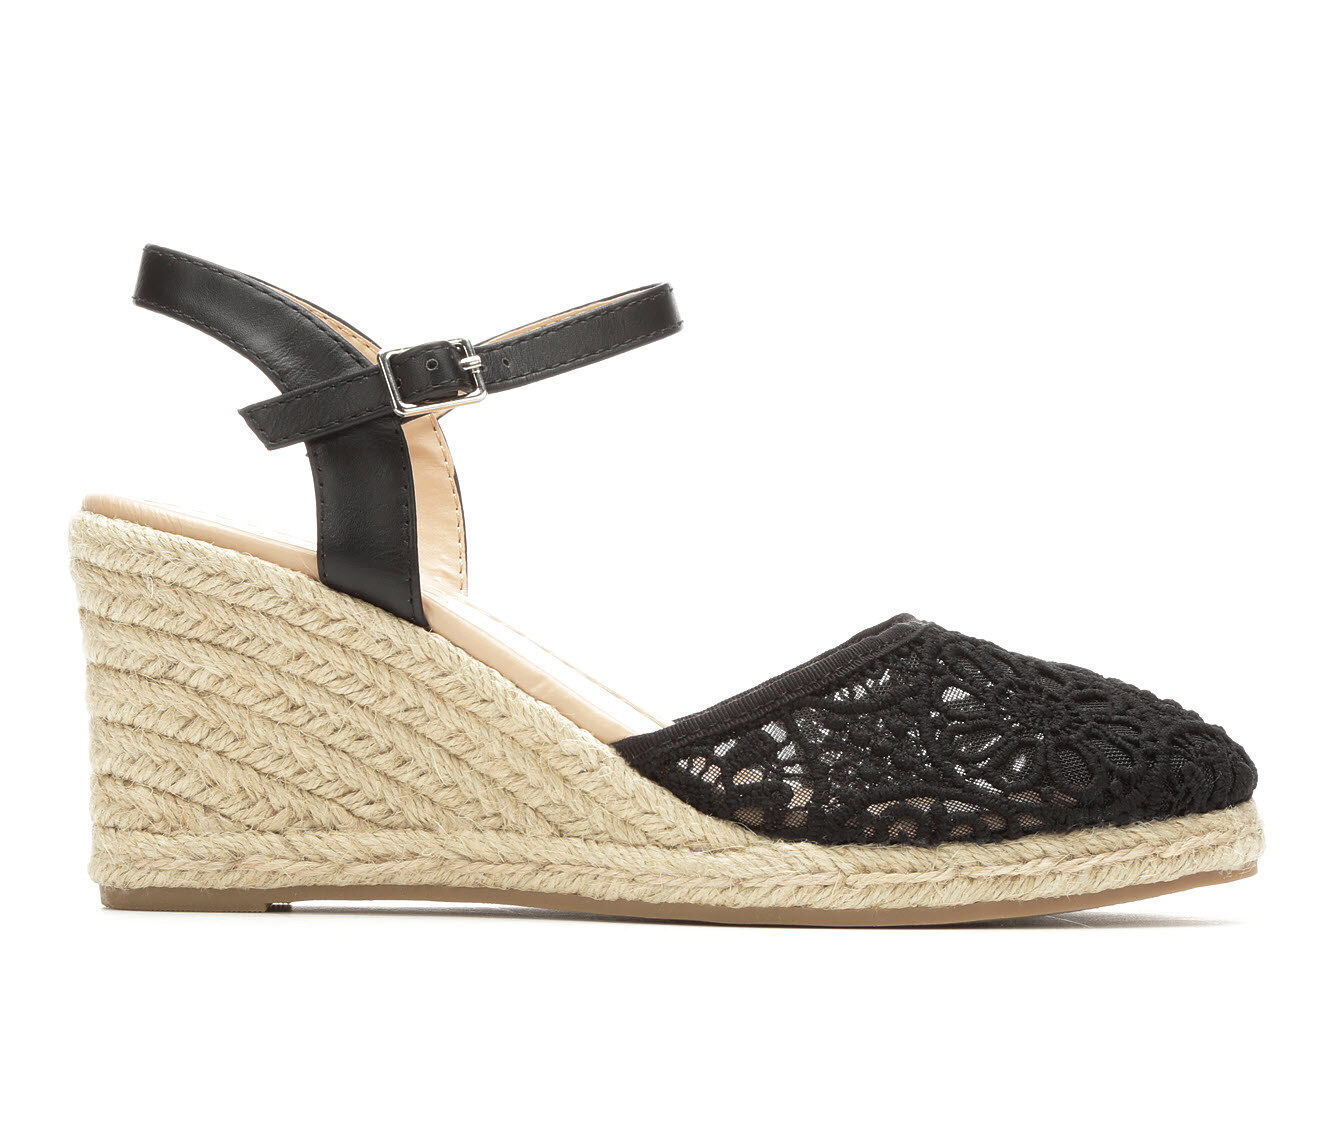 outlet 2015 new clearance cheap price Women's Solanz Lacie Espadrille Wedges wholesale price cheap online free shipping fashion Style G44EieREi